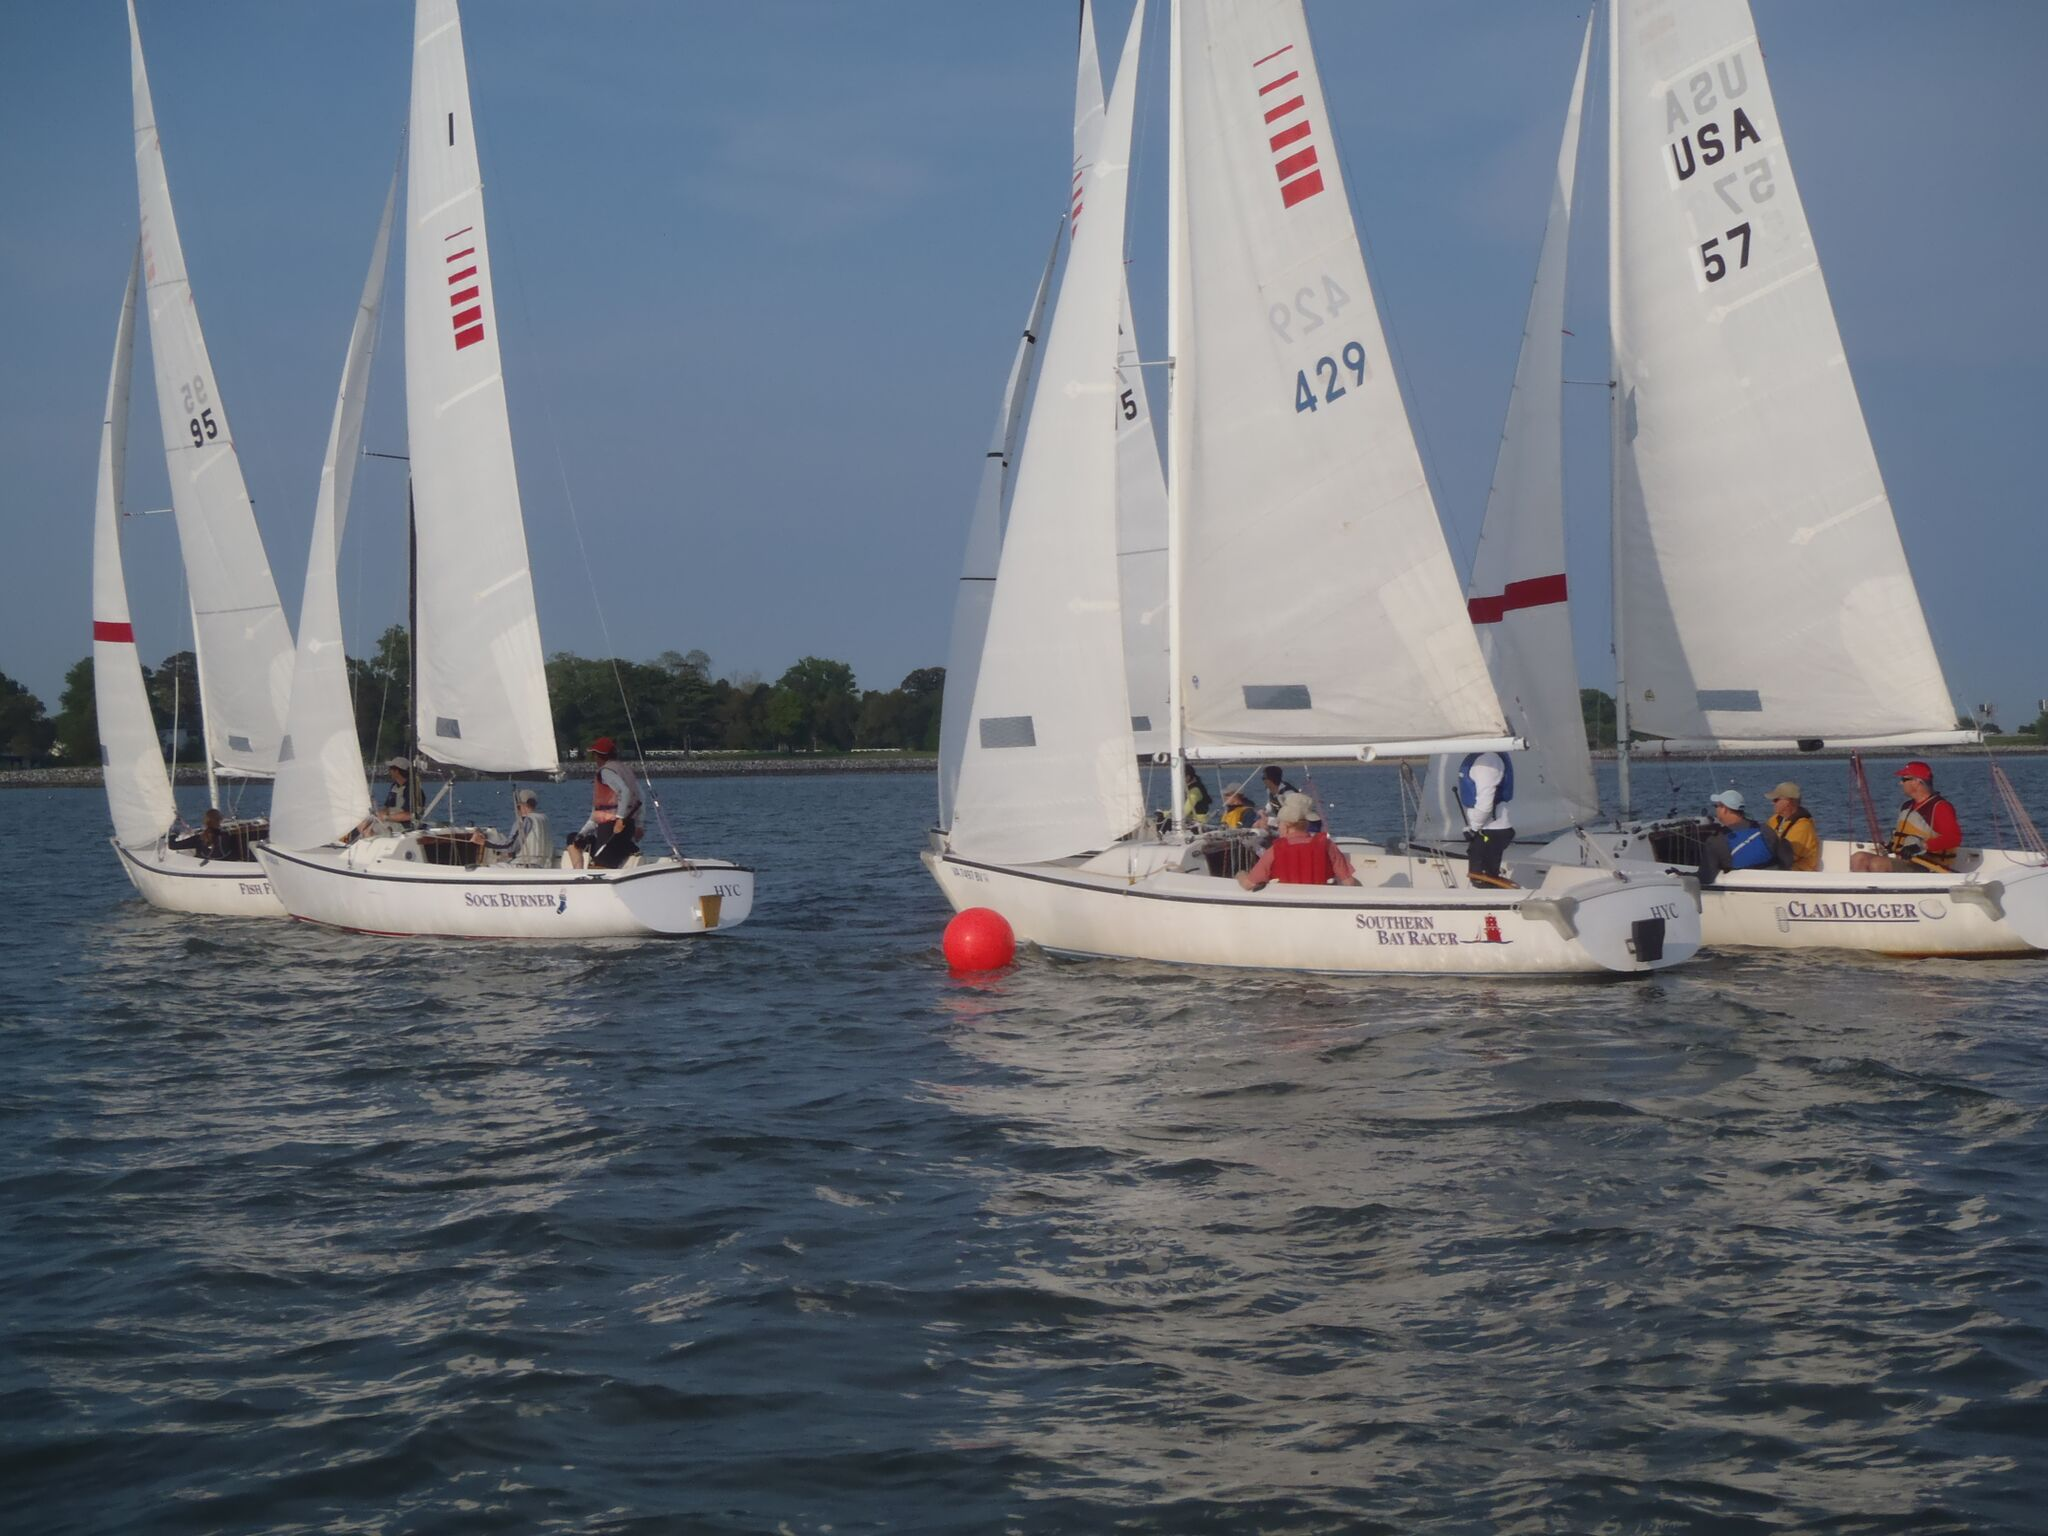 Mark rounding in the sonars during a team race